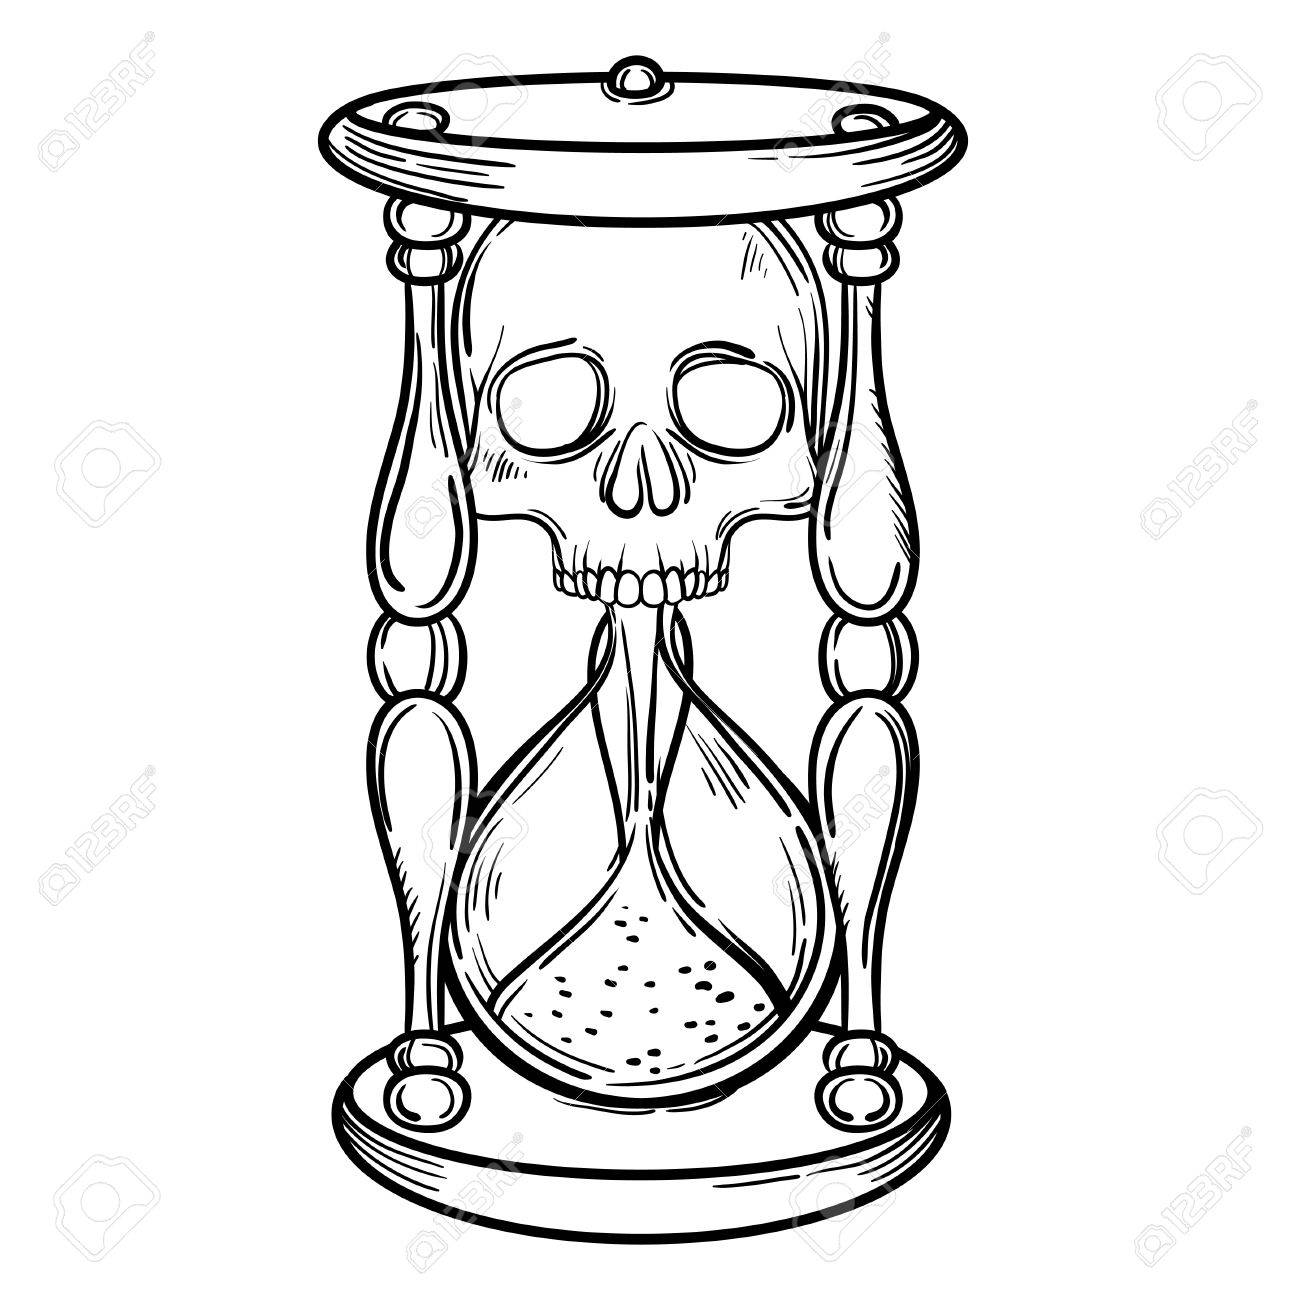 1300x1300 Decorative Antique Death Hourglass Illustration With Skull. Hand